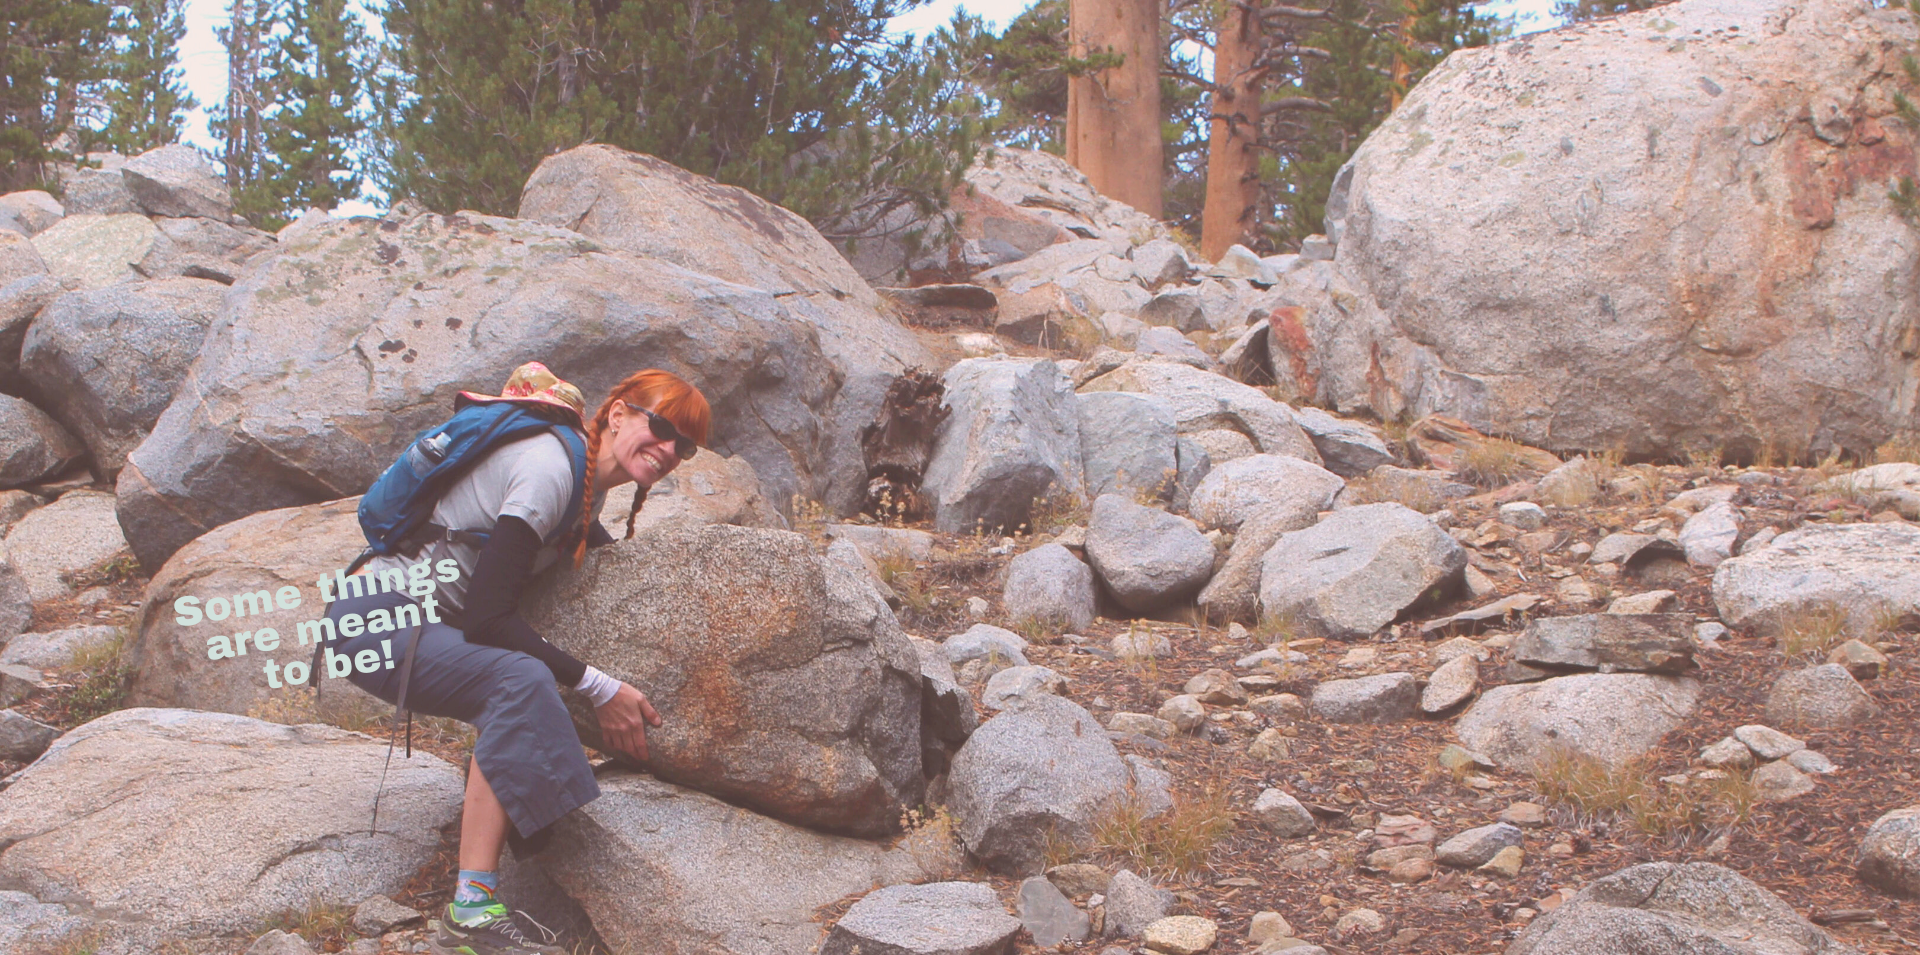 Heather trying to life a large boulder